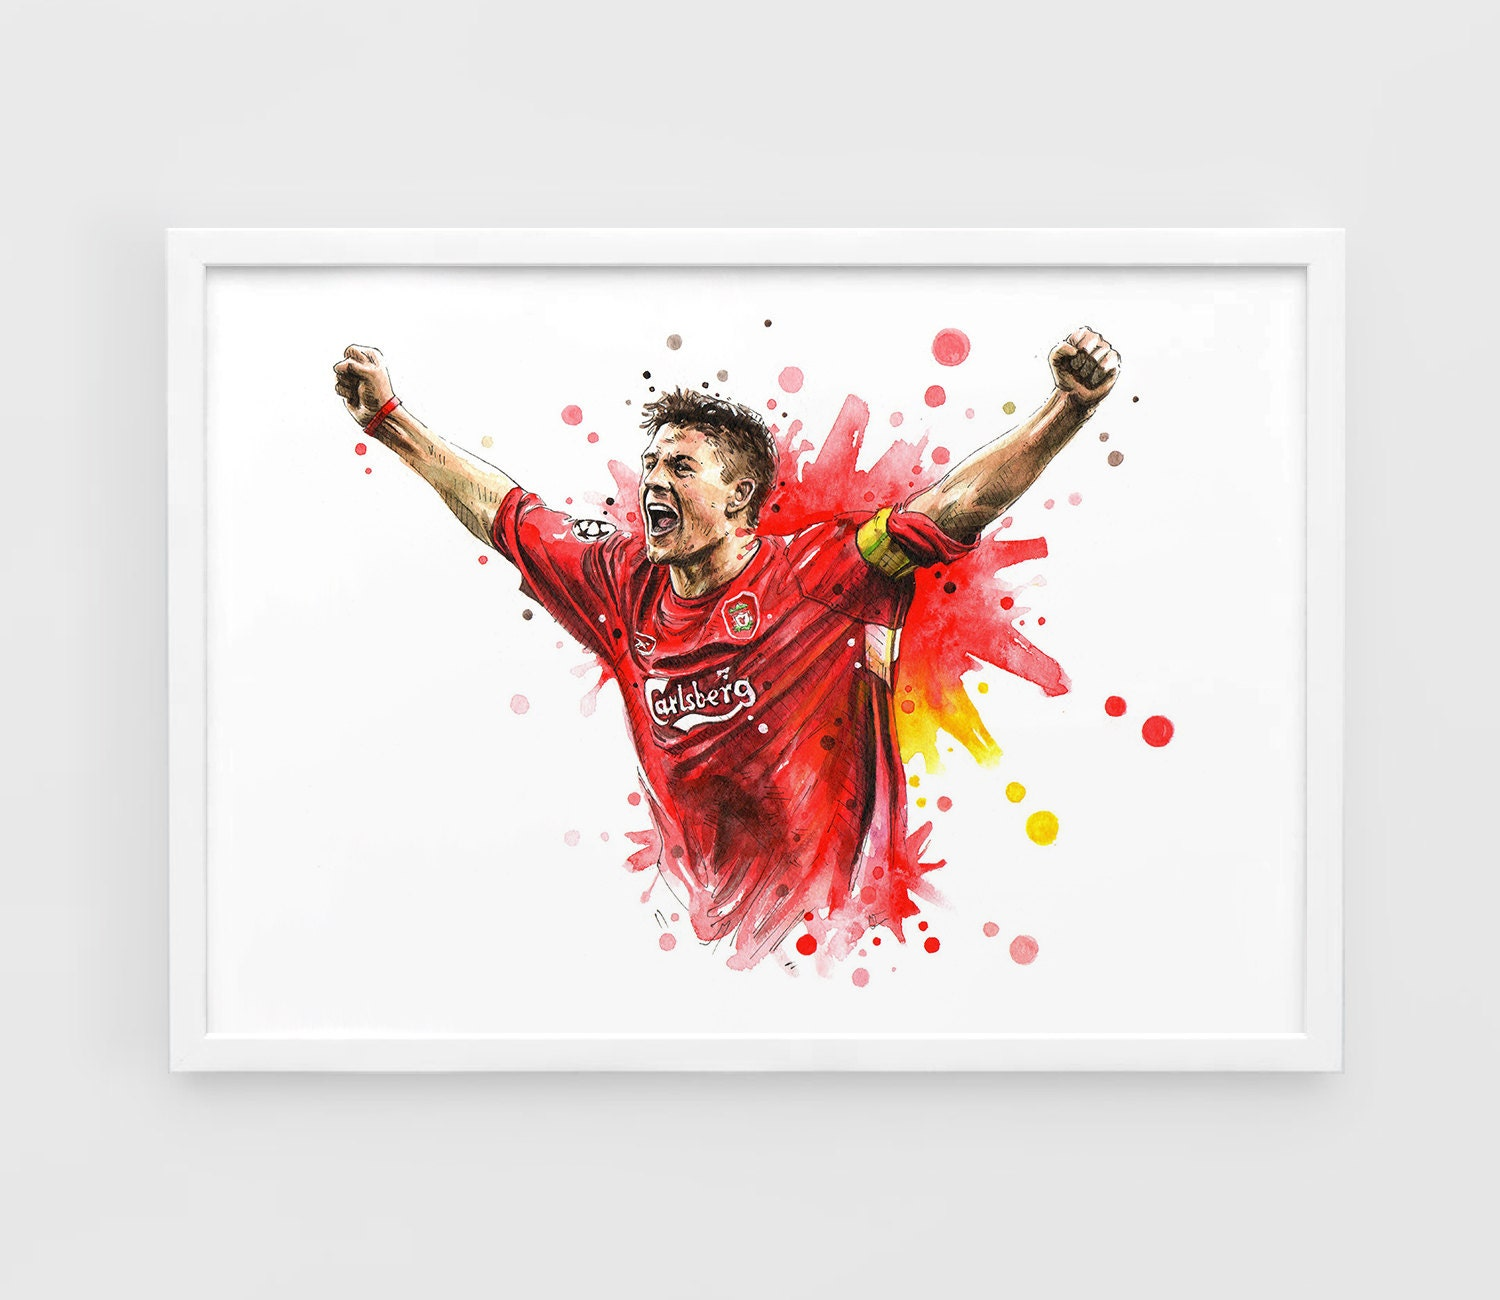 steven gerrard liverpool fc a3 wall art print poster of. Black Bedroom Furniture Sets. Home Design Ideas